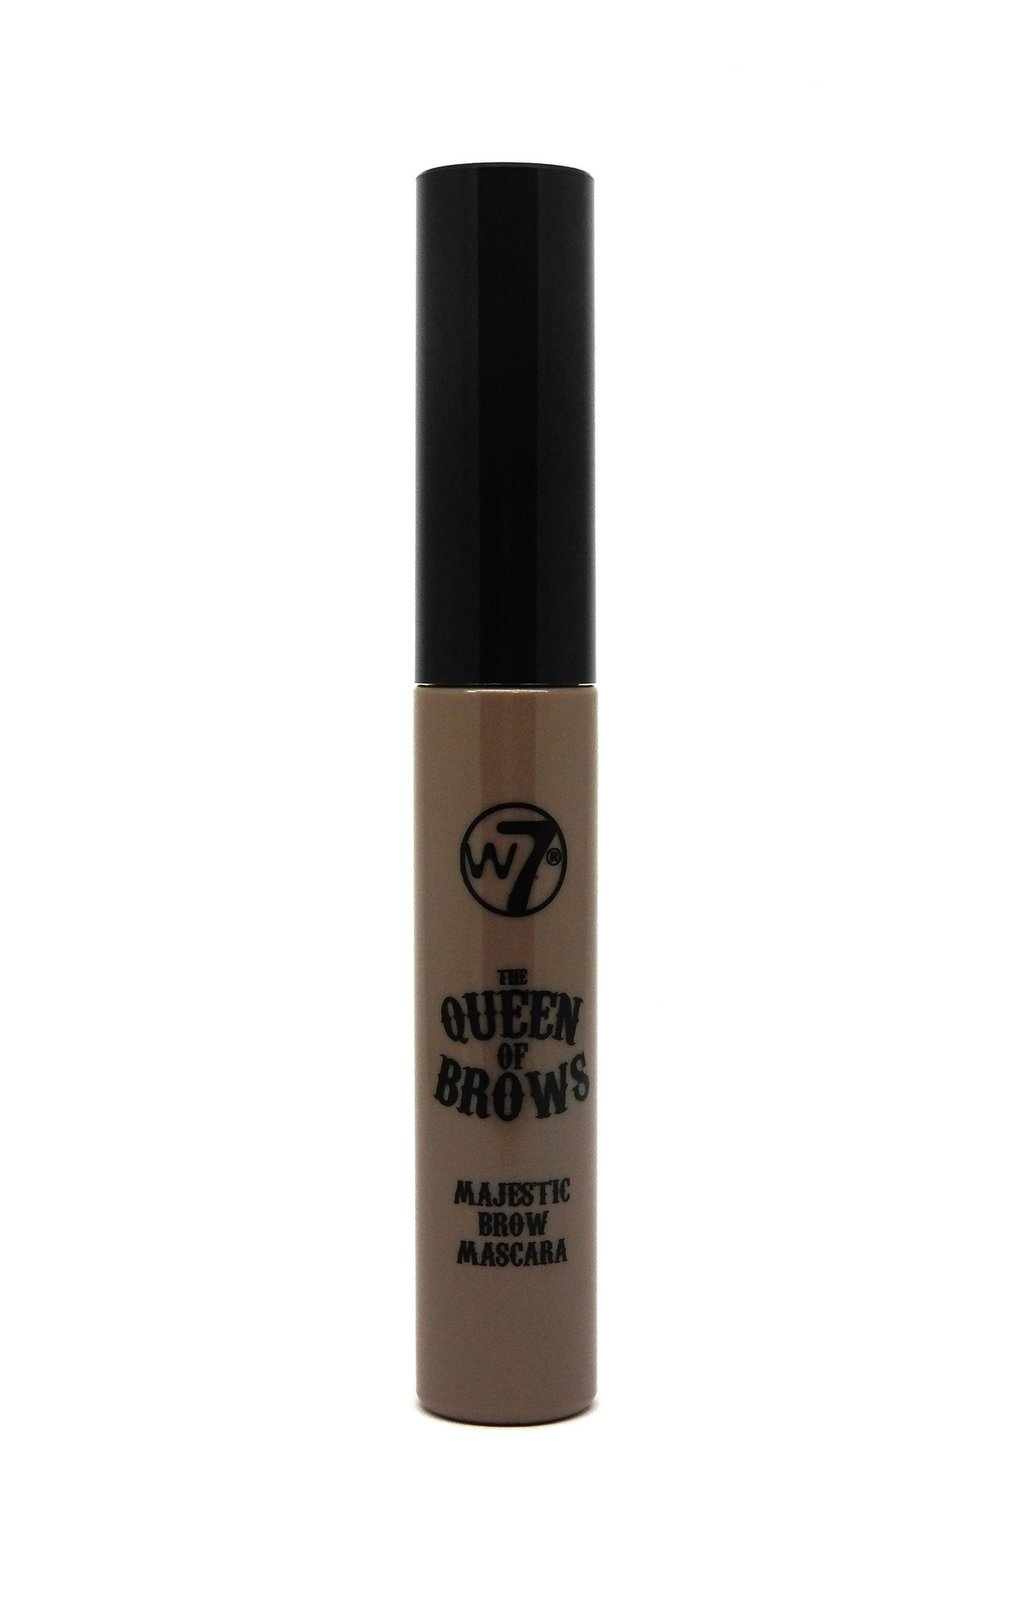 W7 Queen of Brows Majestic Brow Mascara (Brown) image